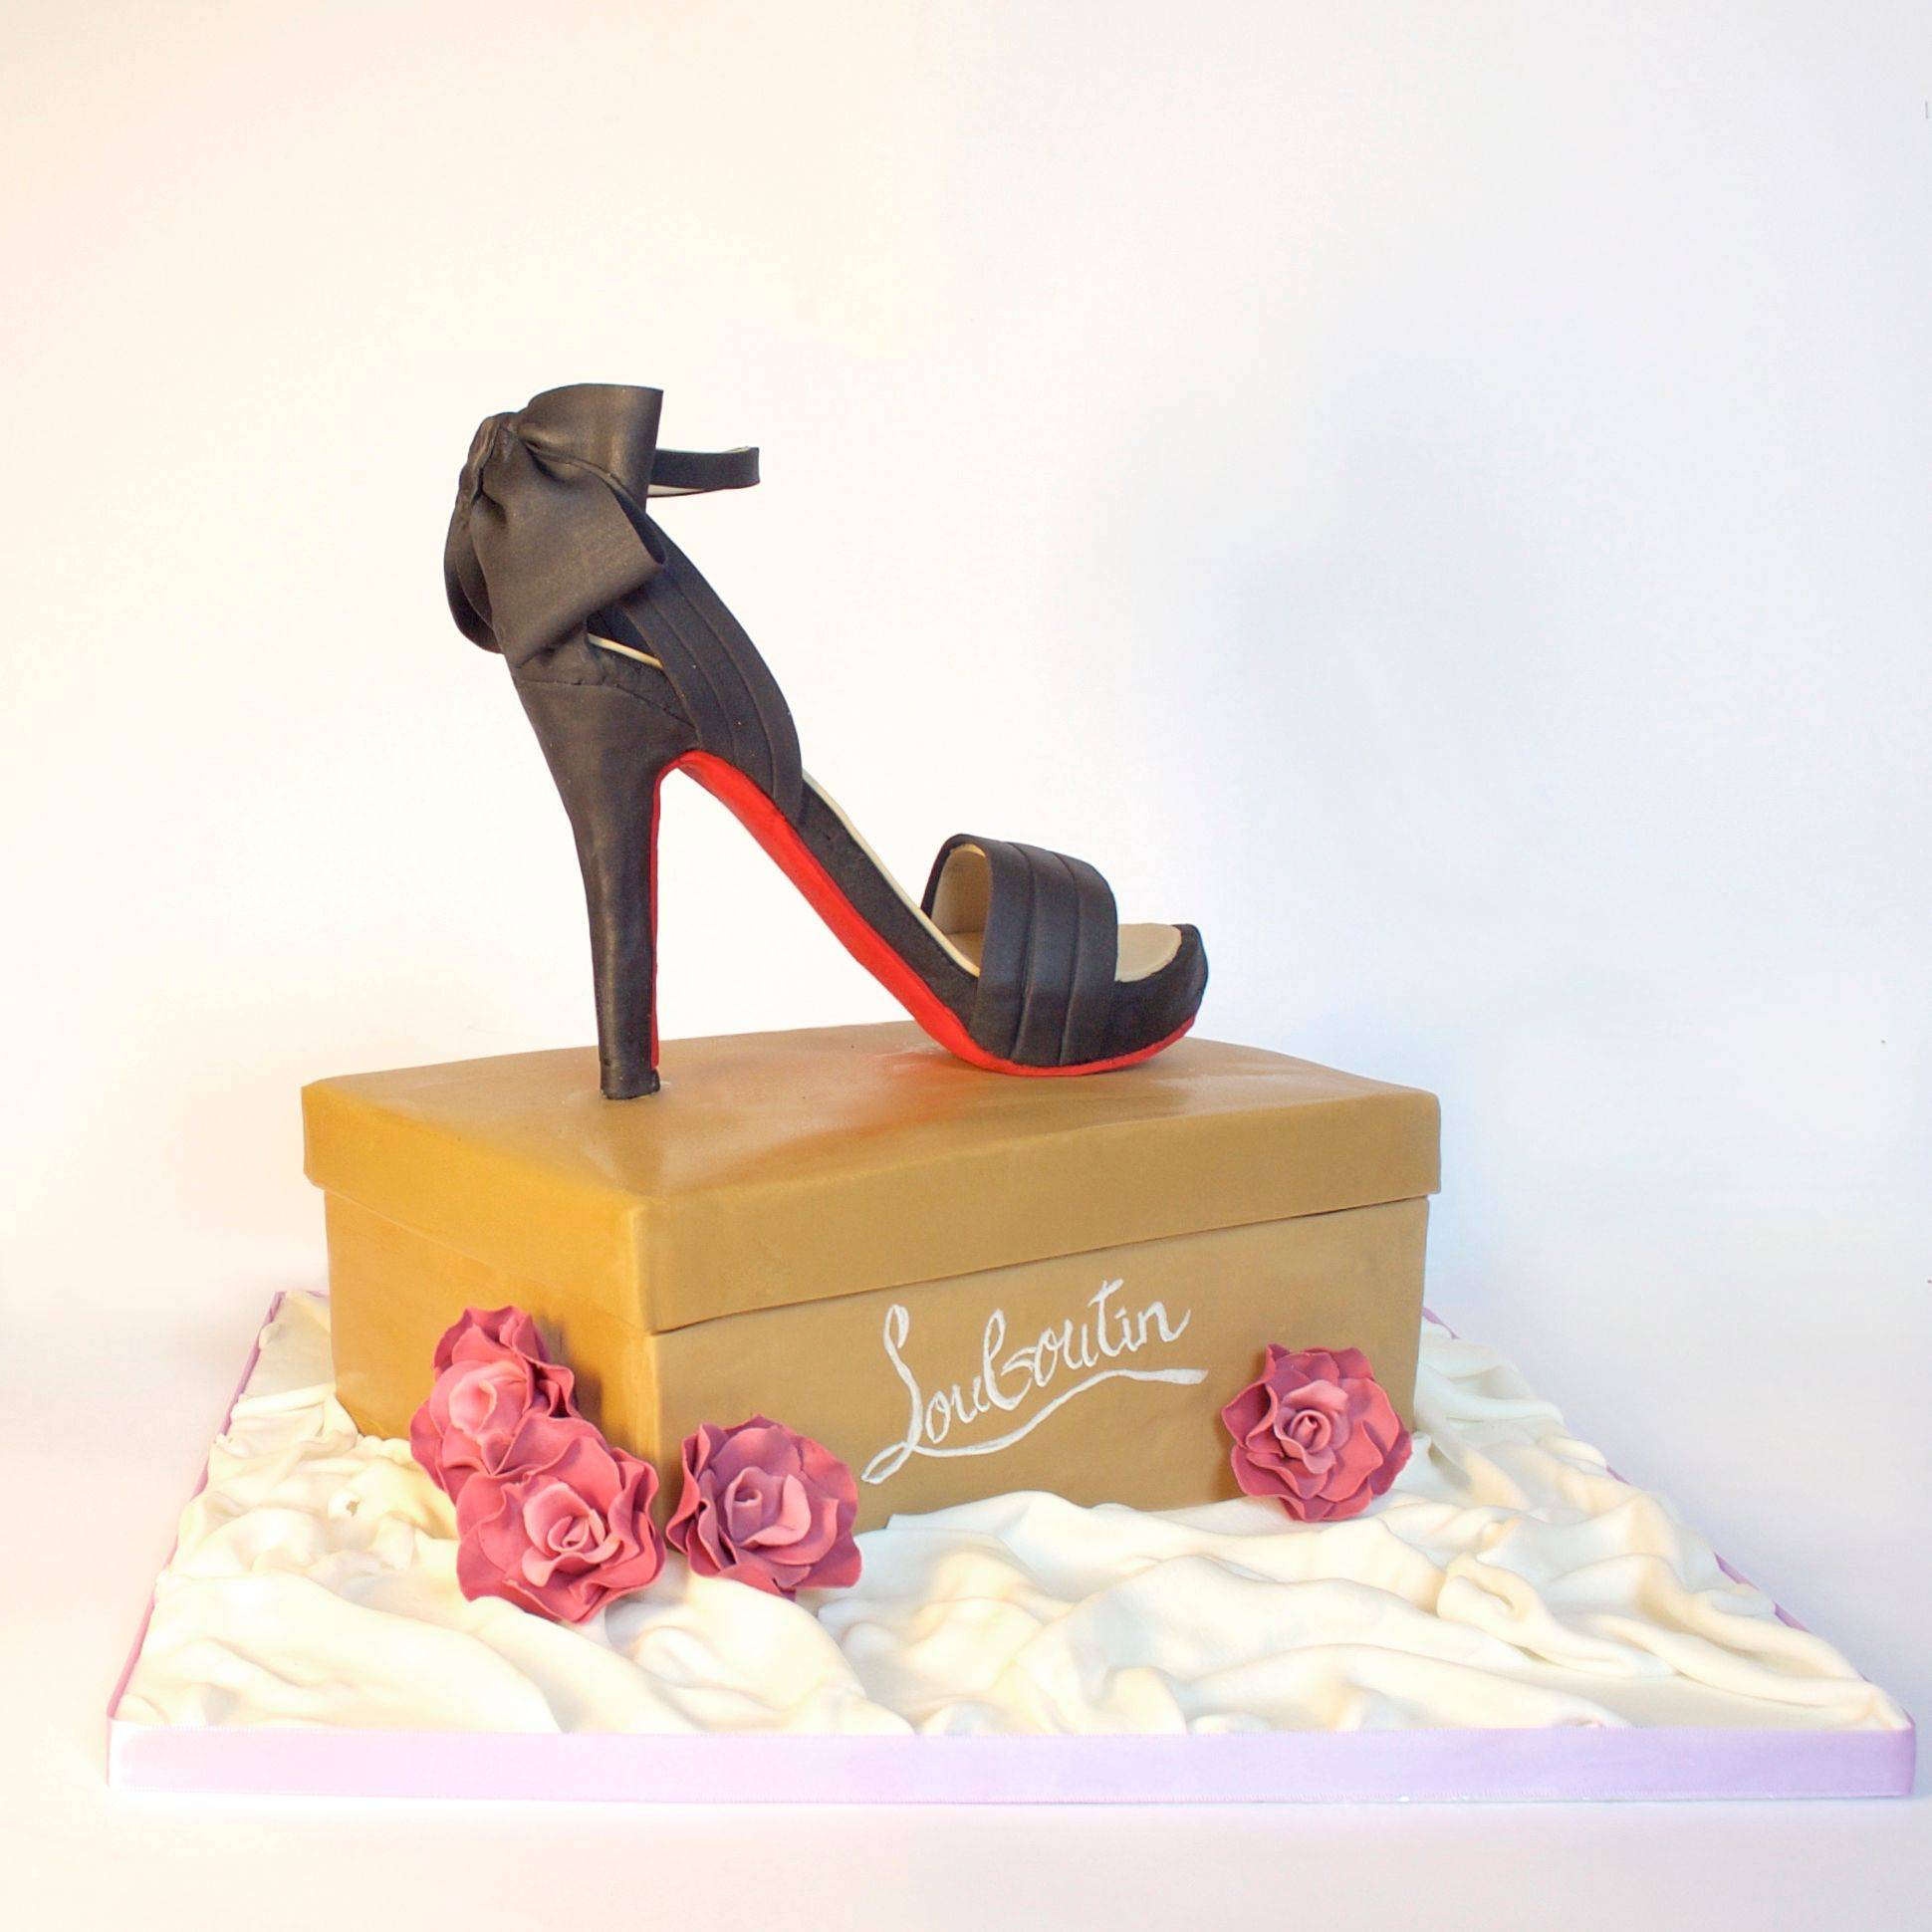 louboutin shoe model handmade in sugar on a shoe box illusion cake